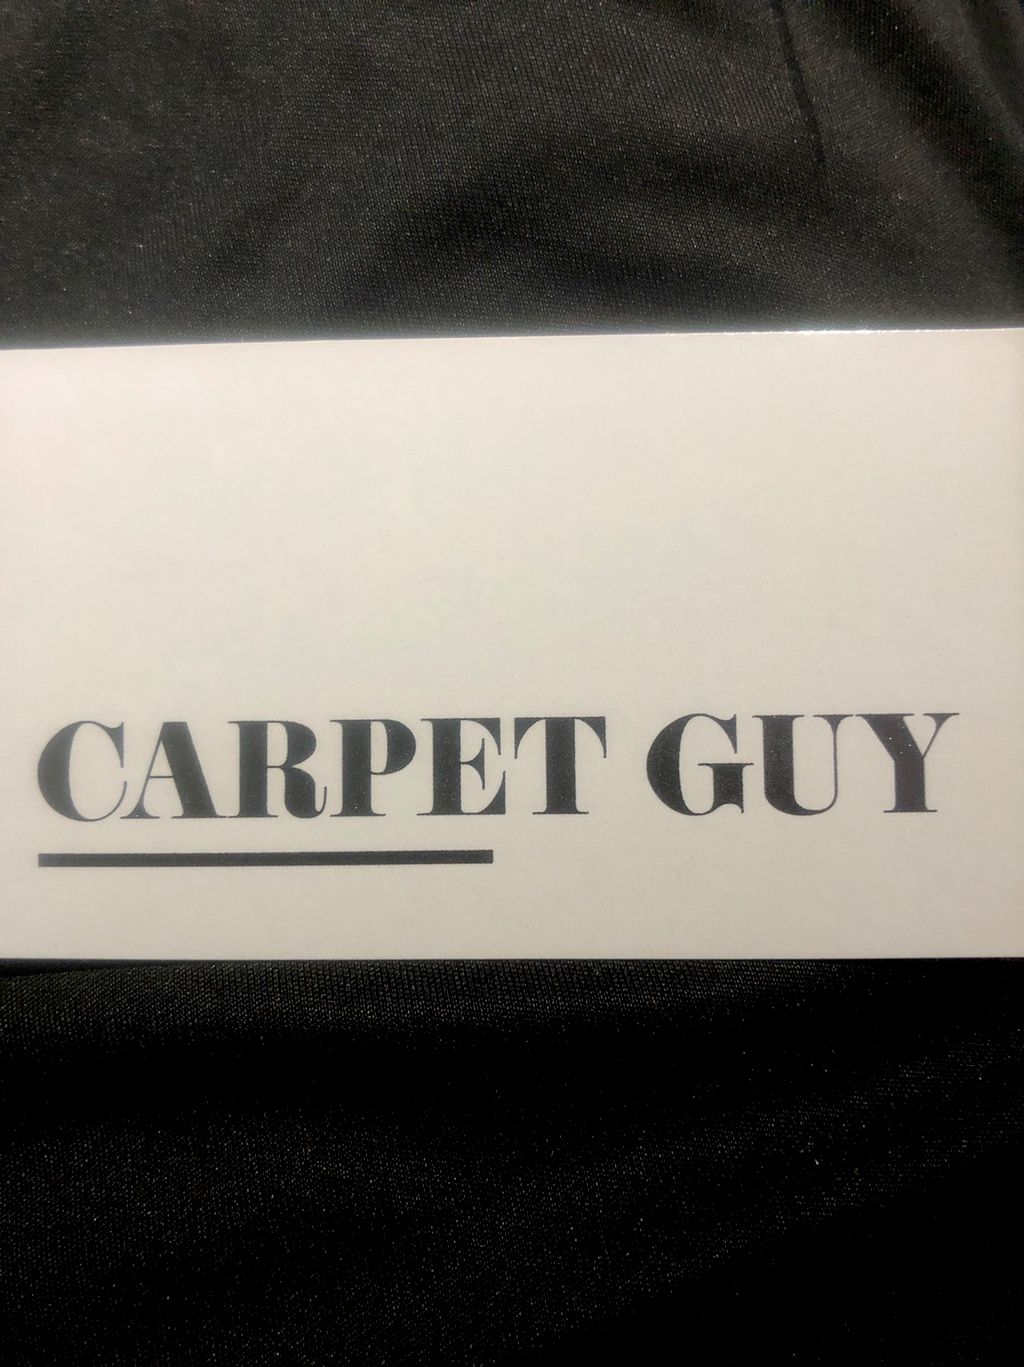 CARPET GUY